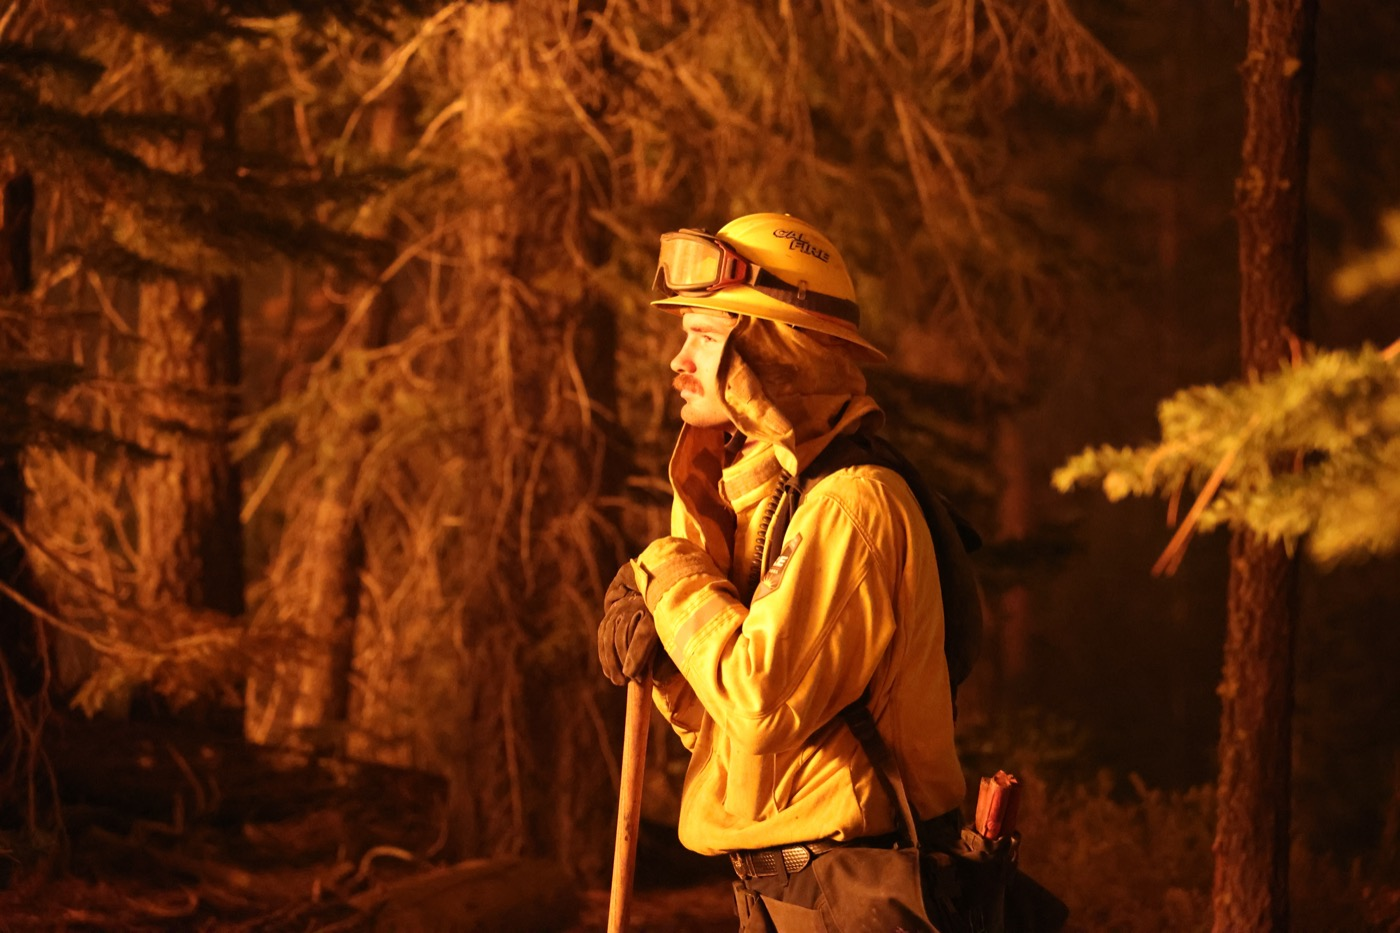 a side profile view of a white man with a moustache wearing a firefighter outfit with a helmet with goggles on it, leaning on a pole. its night and he's being illuminated by the orange glow of the blaze